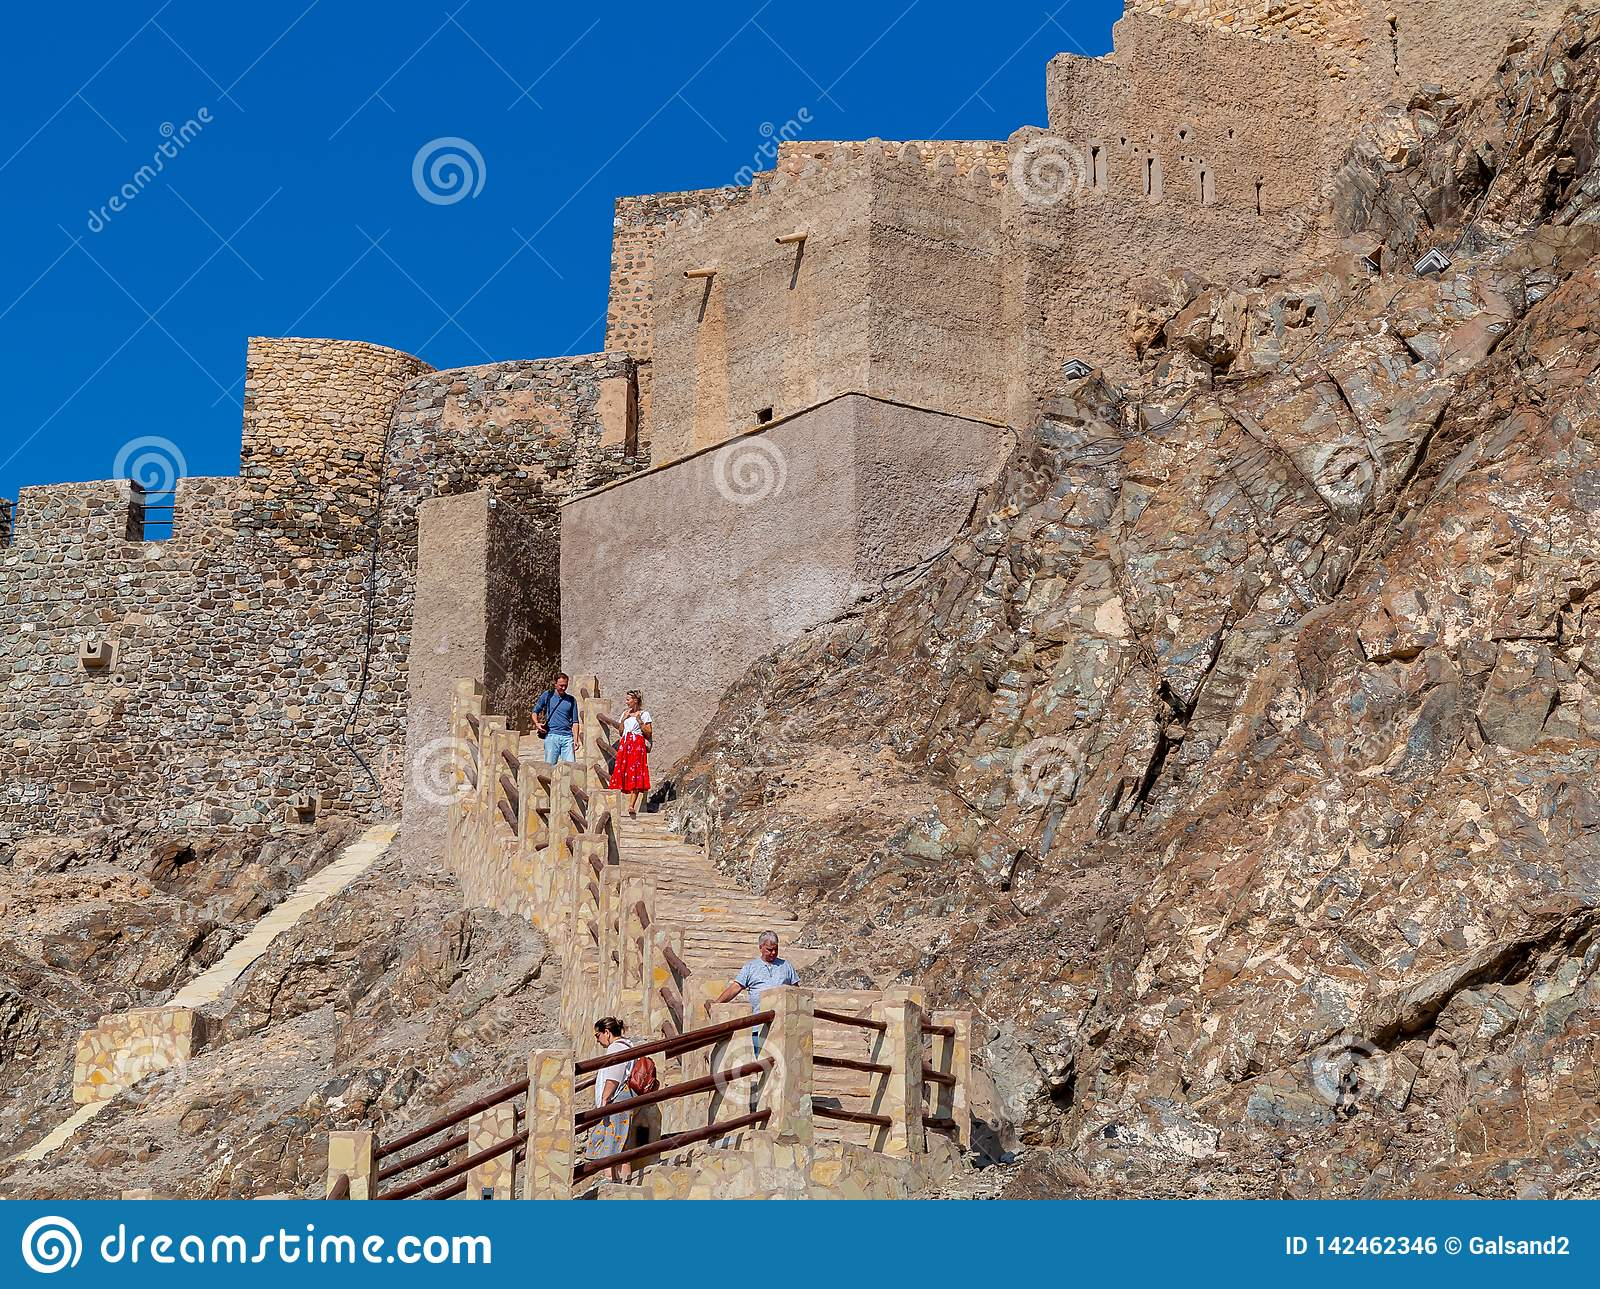 Muscat, Oman - December 17, 2018: Fort Muttrah In Muscat, The